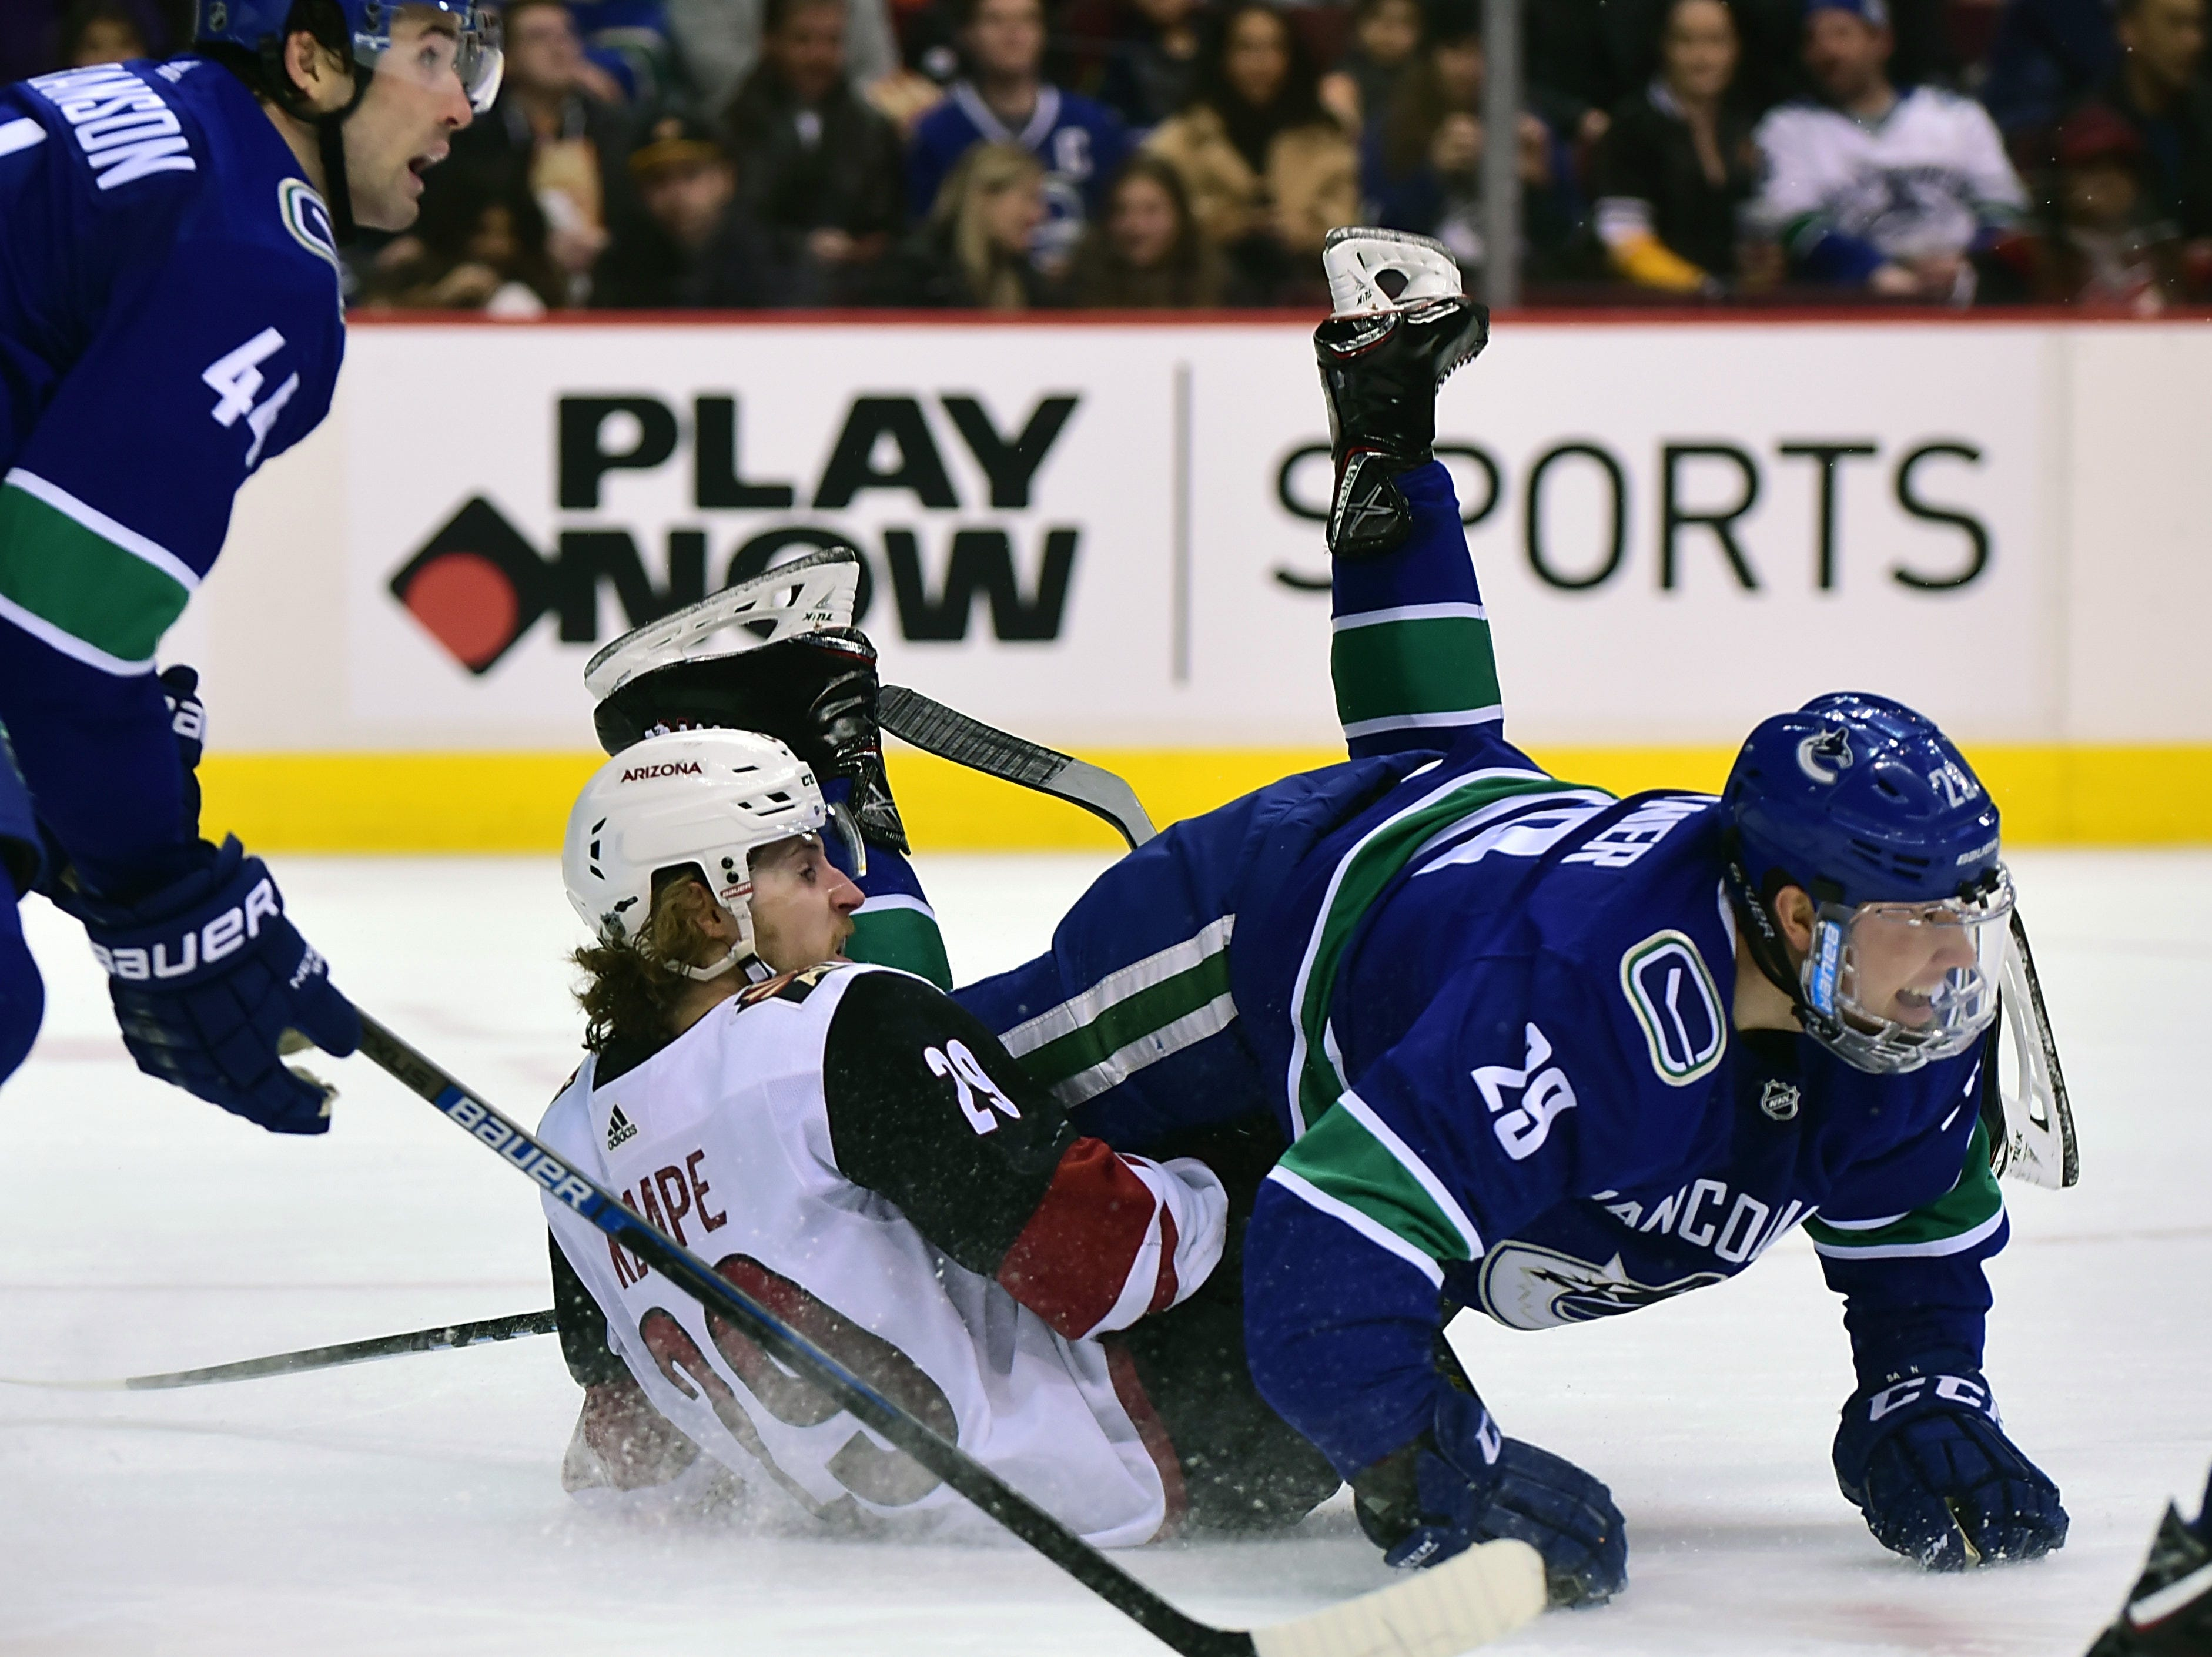 Feb 21, 2019; Vancouver, British Columbia, CAN; Arizona Coyotes forward Mario Kempe (29) collides with Vancouver Canucks defenseman Ashton Sautner (29) during the second period at Rogers Arena. Mandatory Credit: Anne-Marie Sorvin-USA TODAY Sports